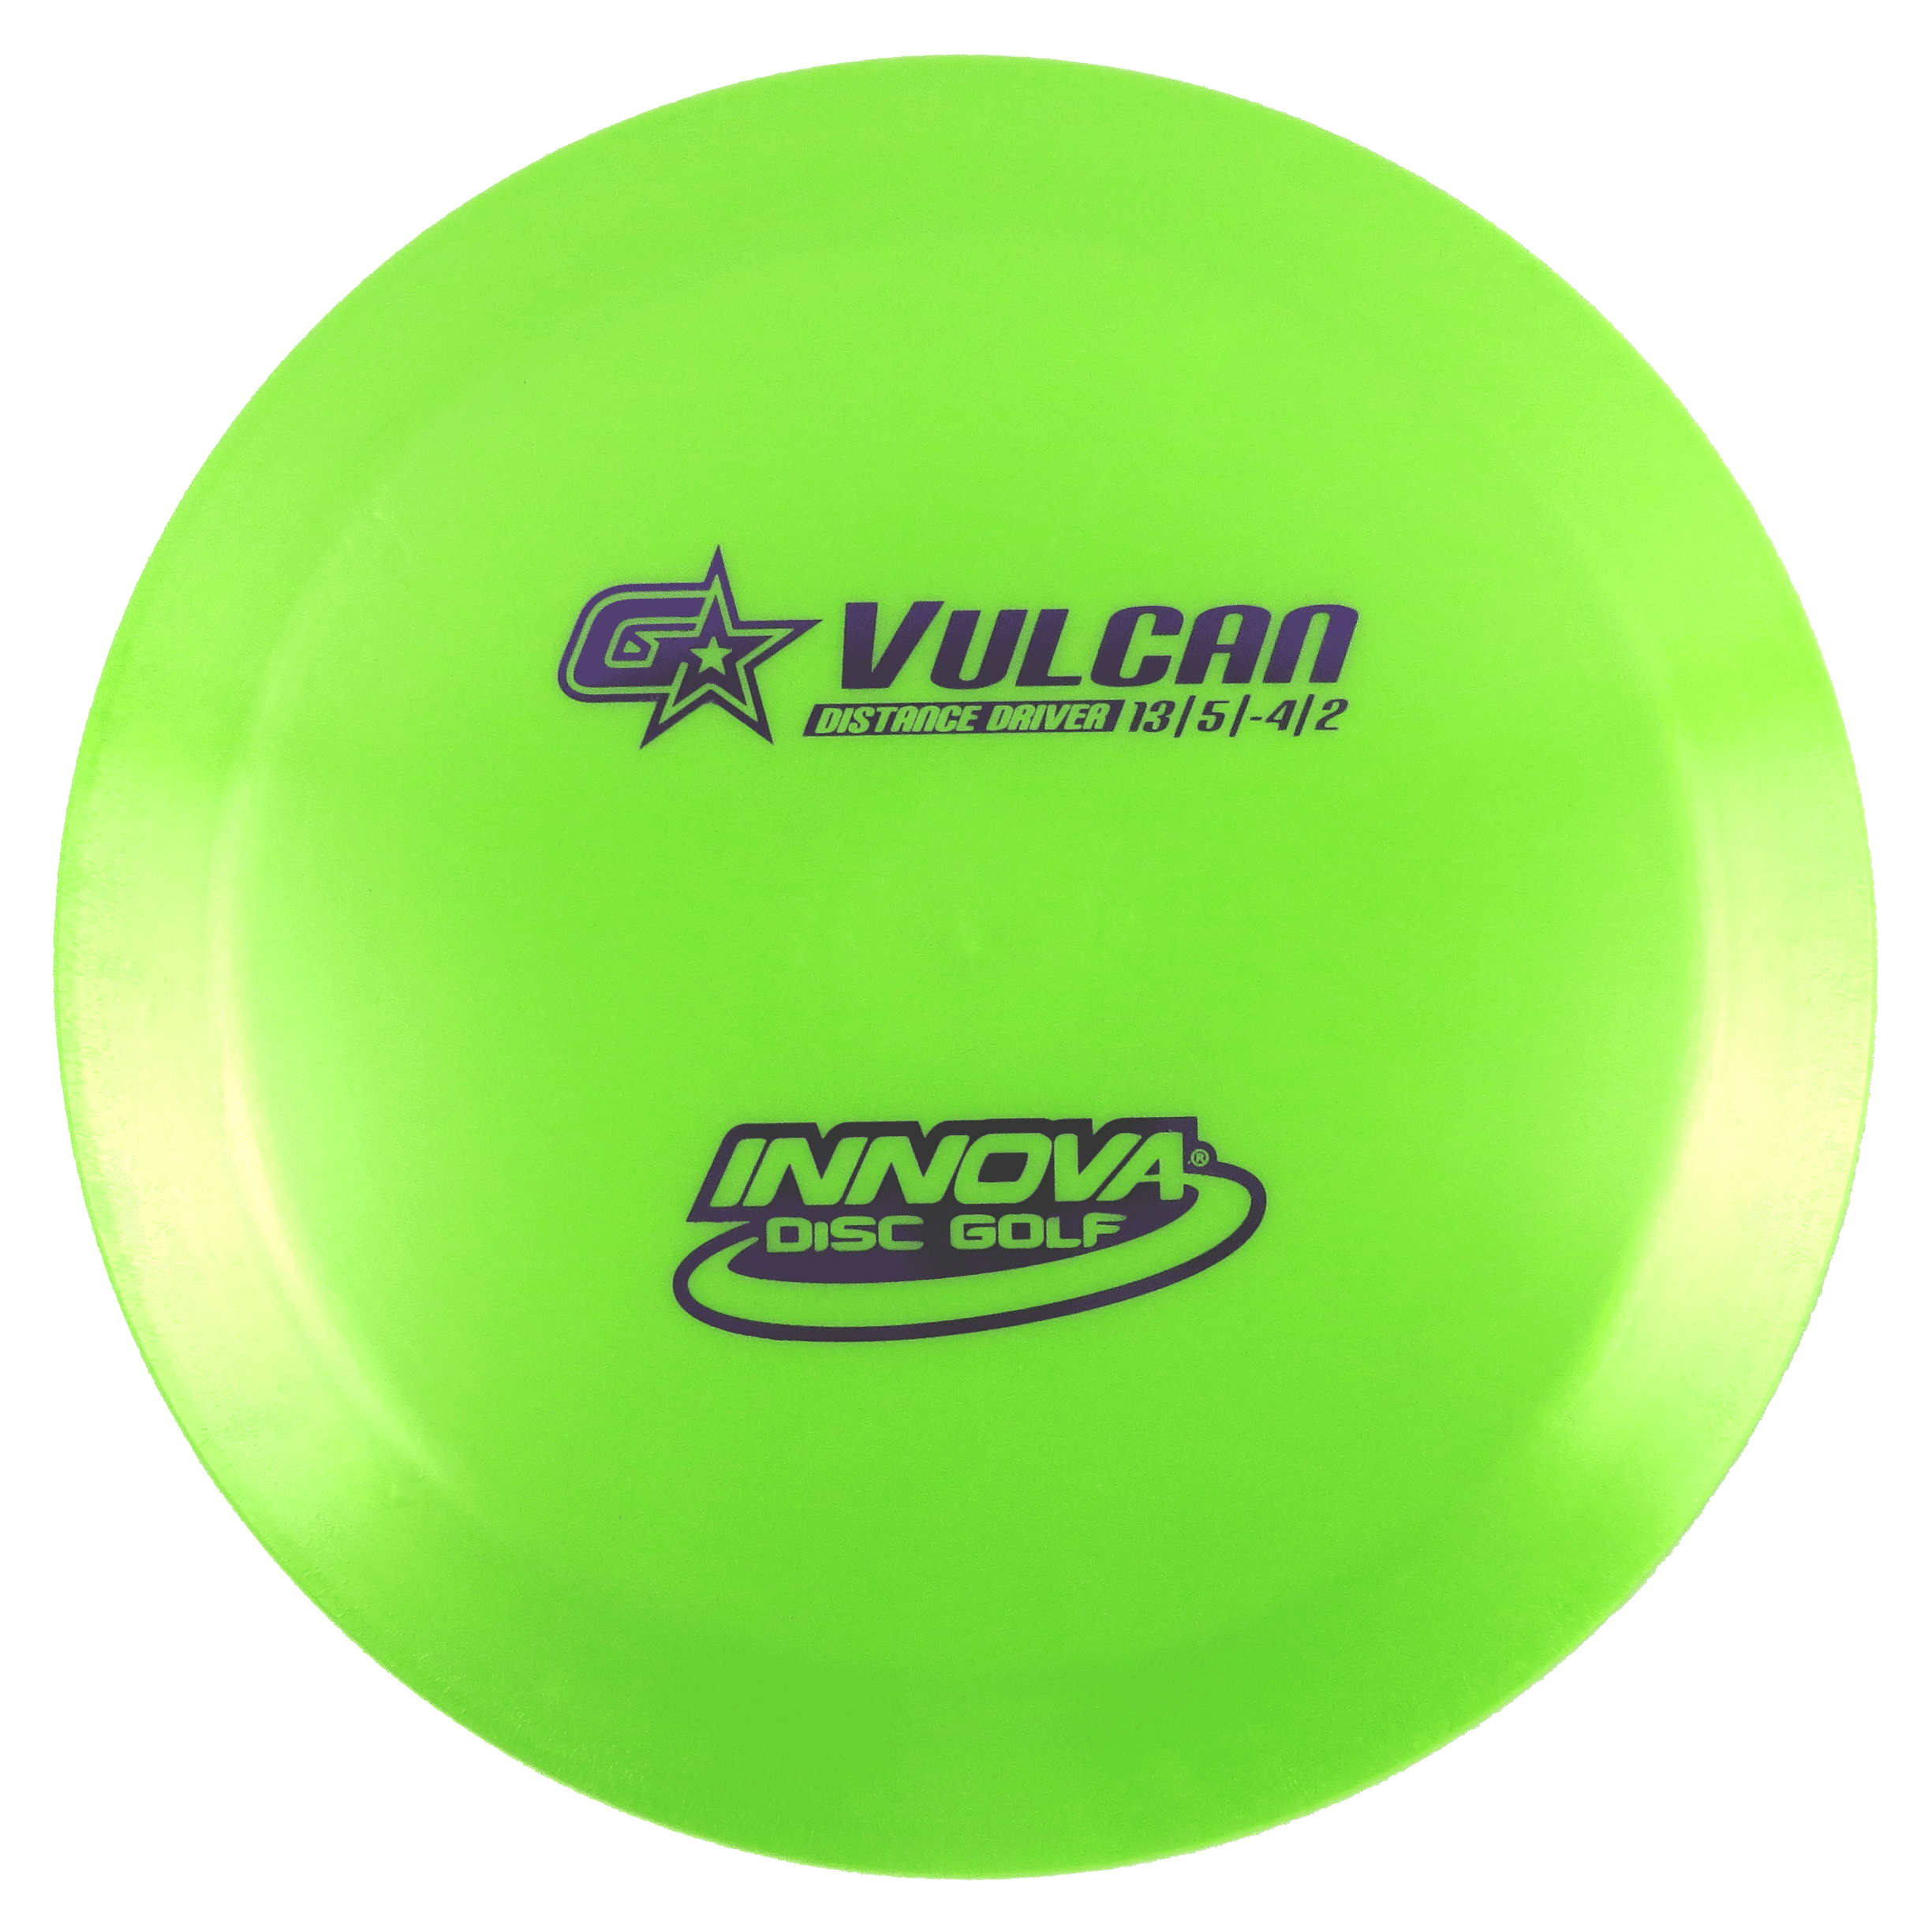 Innova GStar Vulcan 170-172g Distance Driver Golf Disc [Colors may vary] 170-172g by